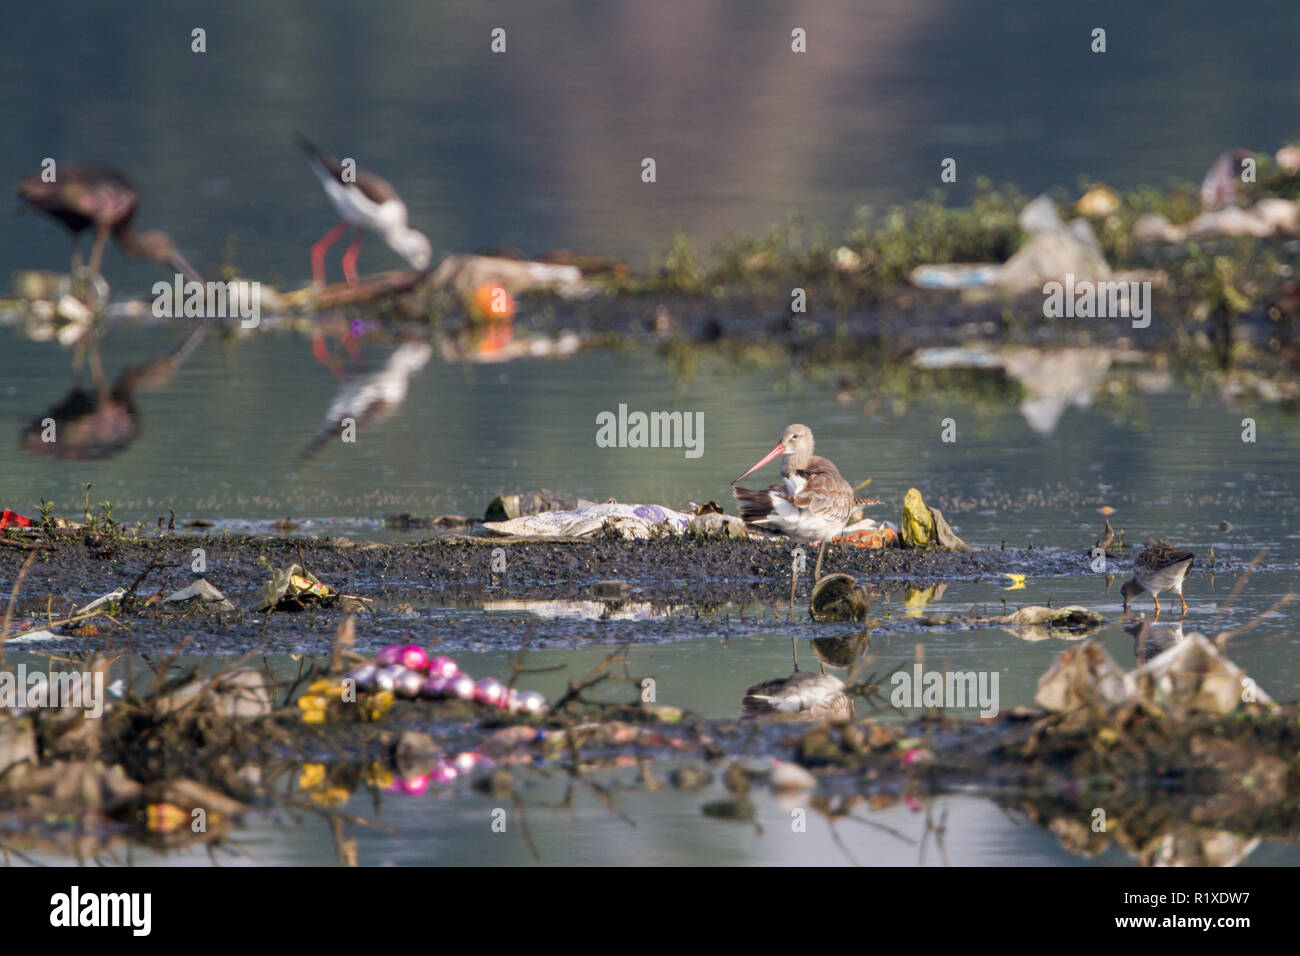 The black-tailed godwit (Limosa limosa) in polluted riverbank near Pune, Maharashtra, India - Stock Image